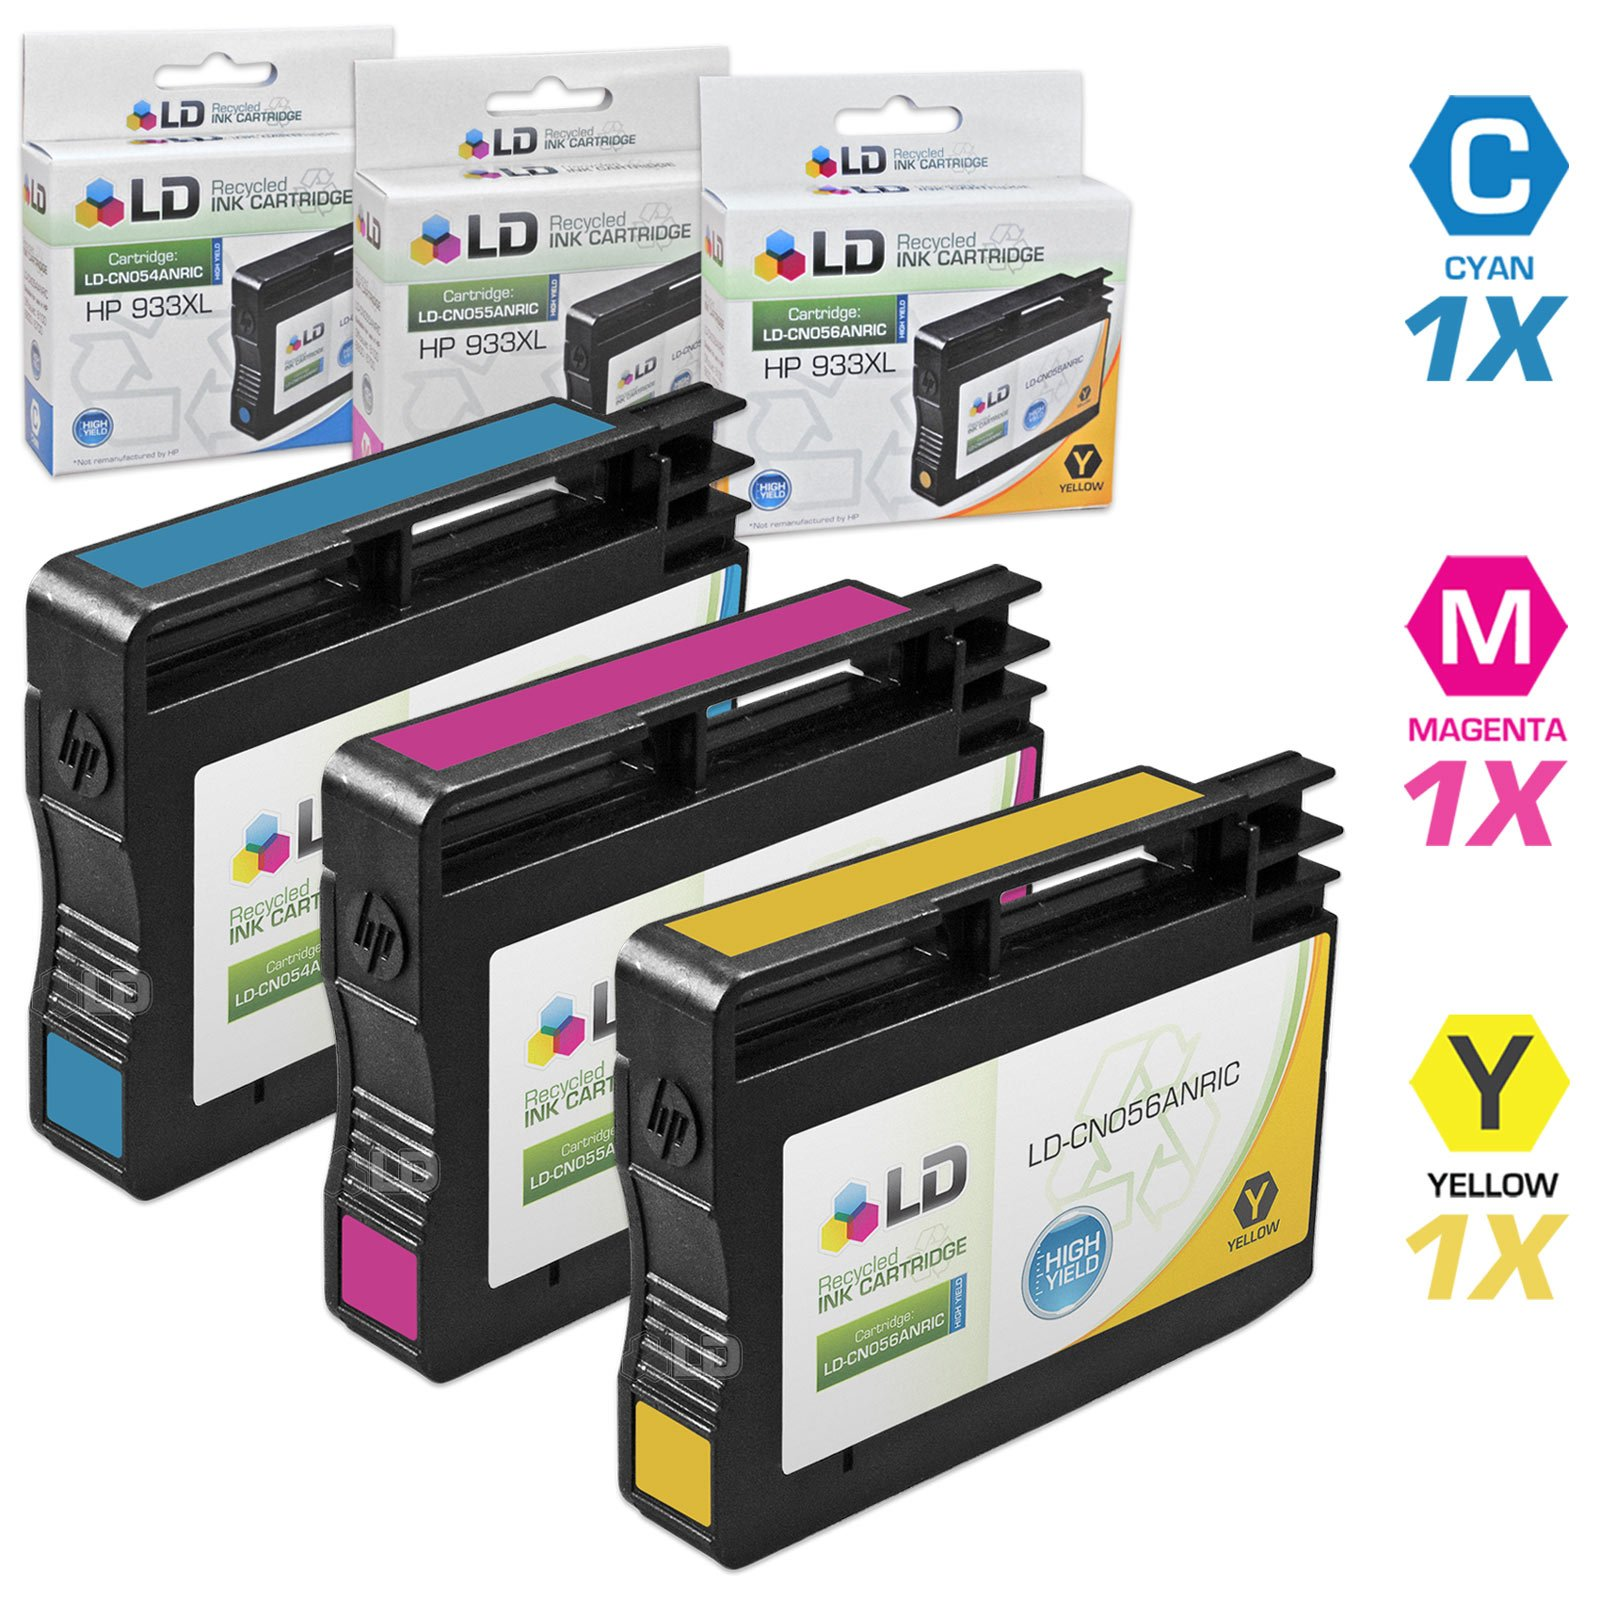 6500 Bulk: RCD973 CD635AN; Models: OfficeJet 6000 14 Inkjet Cartridges 7000; Magenta Ink Myriad Re-Manufactured Inkjet Cartridges Replacement for HP CD973AN